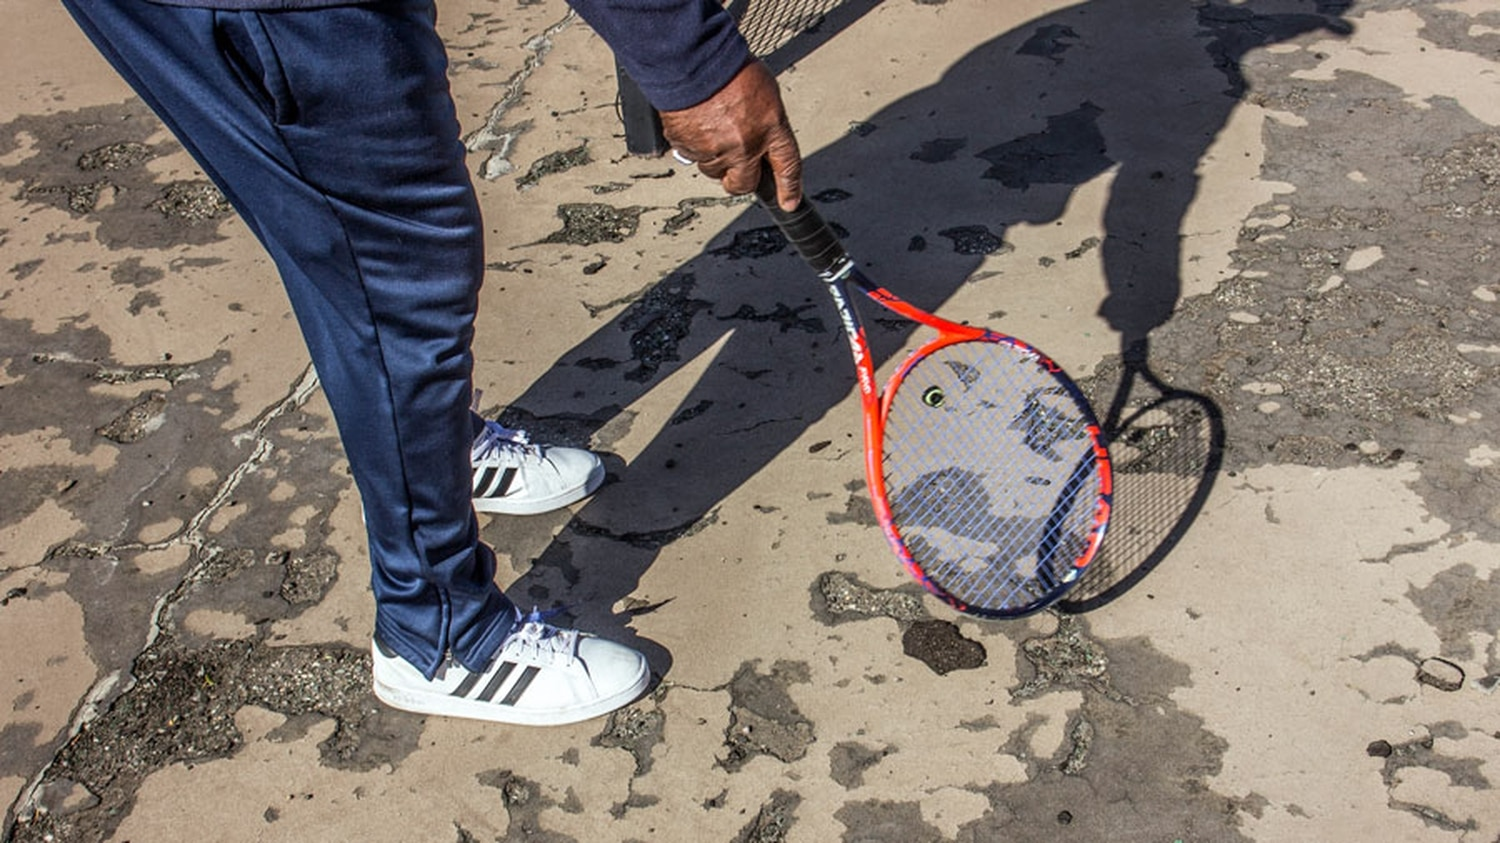 King uses a racket to point to damage in the tennis court at Herb Martinez Park.